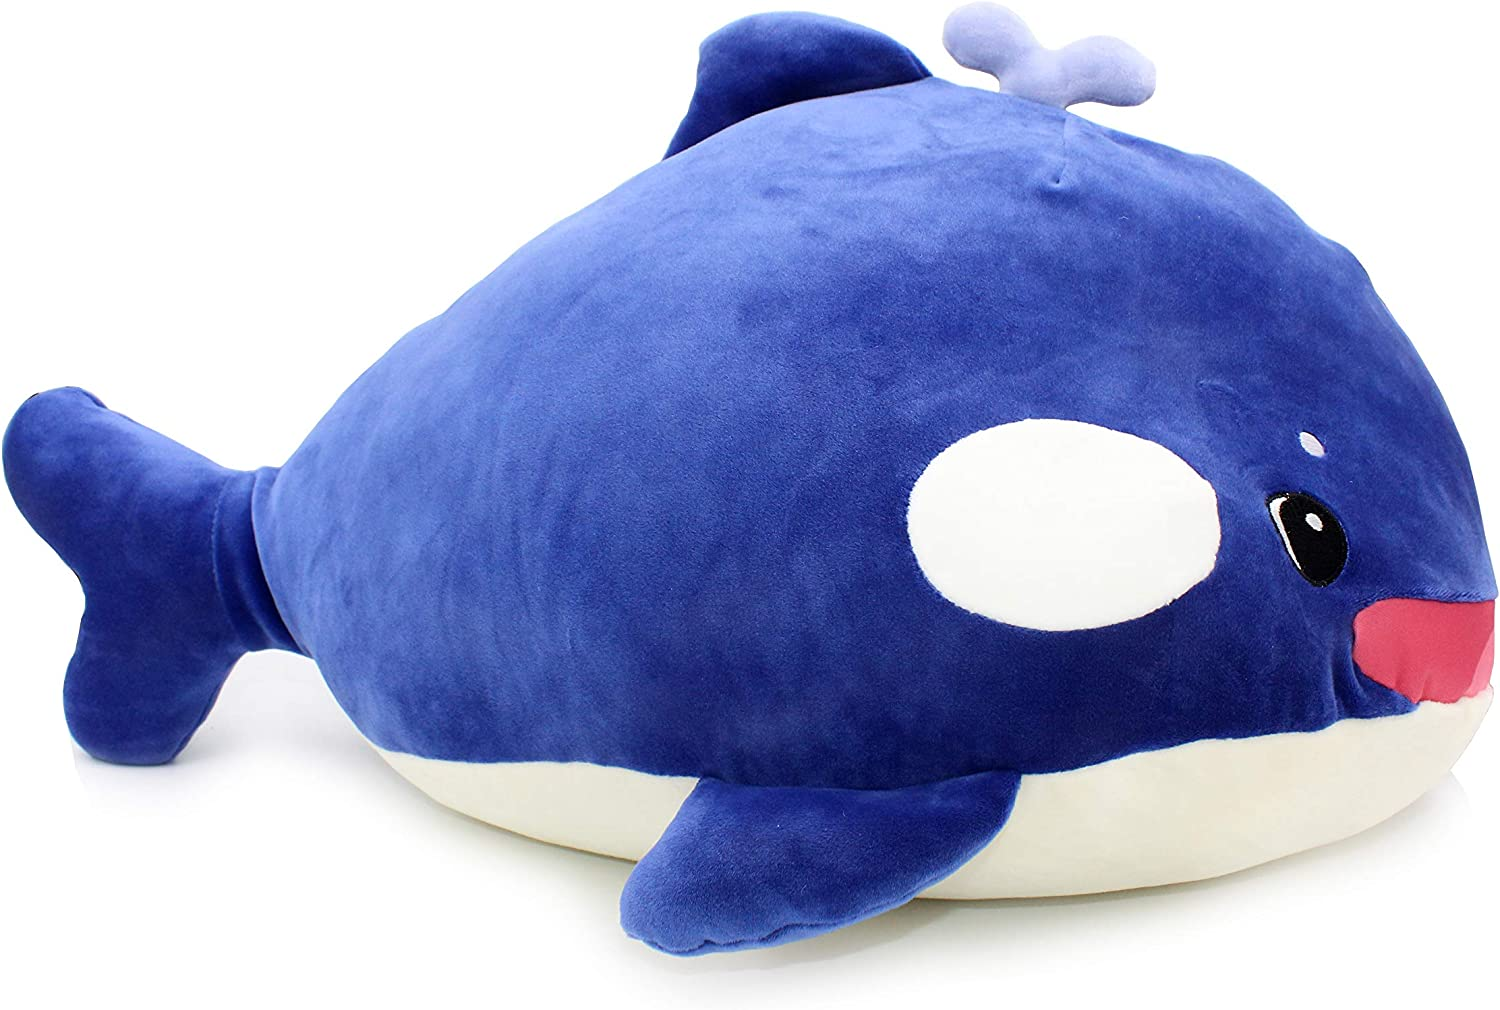 Vintoys Very Soft Orca Blue Whale Big Hugging Pillow Plush Doll Fish Plush Toy Stuffed Animals 22